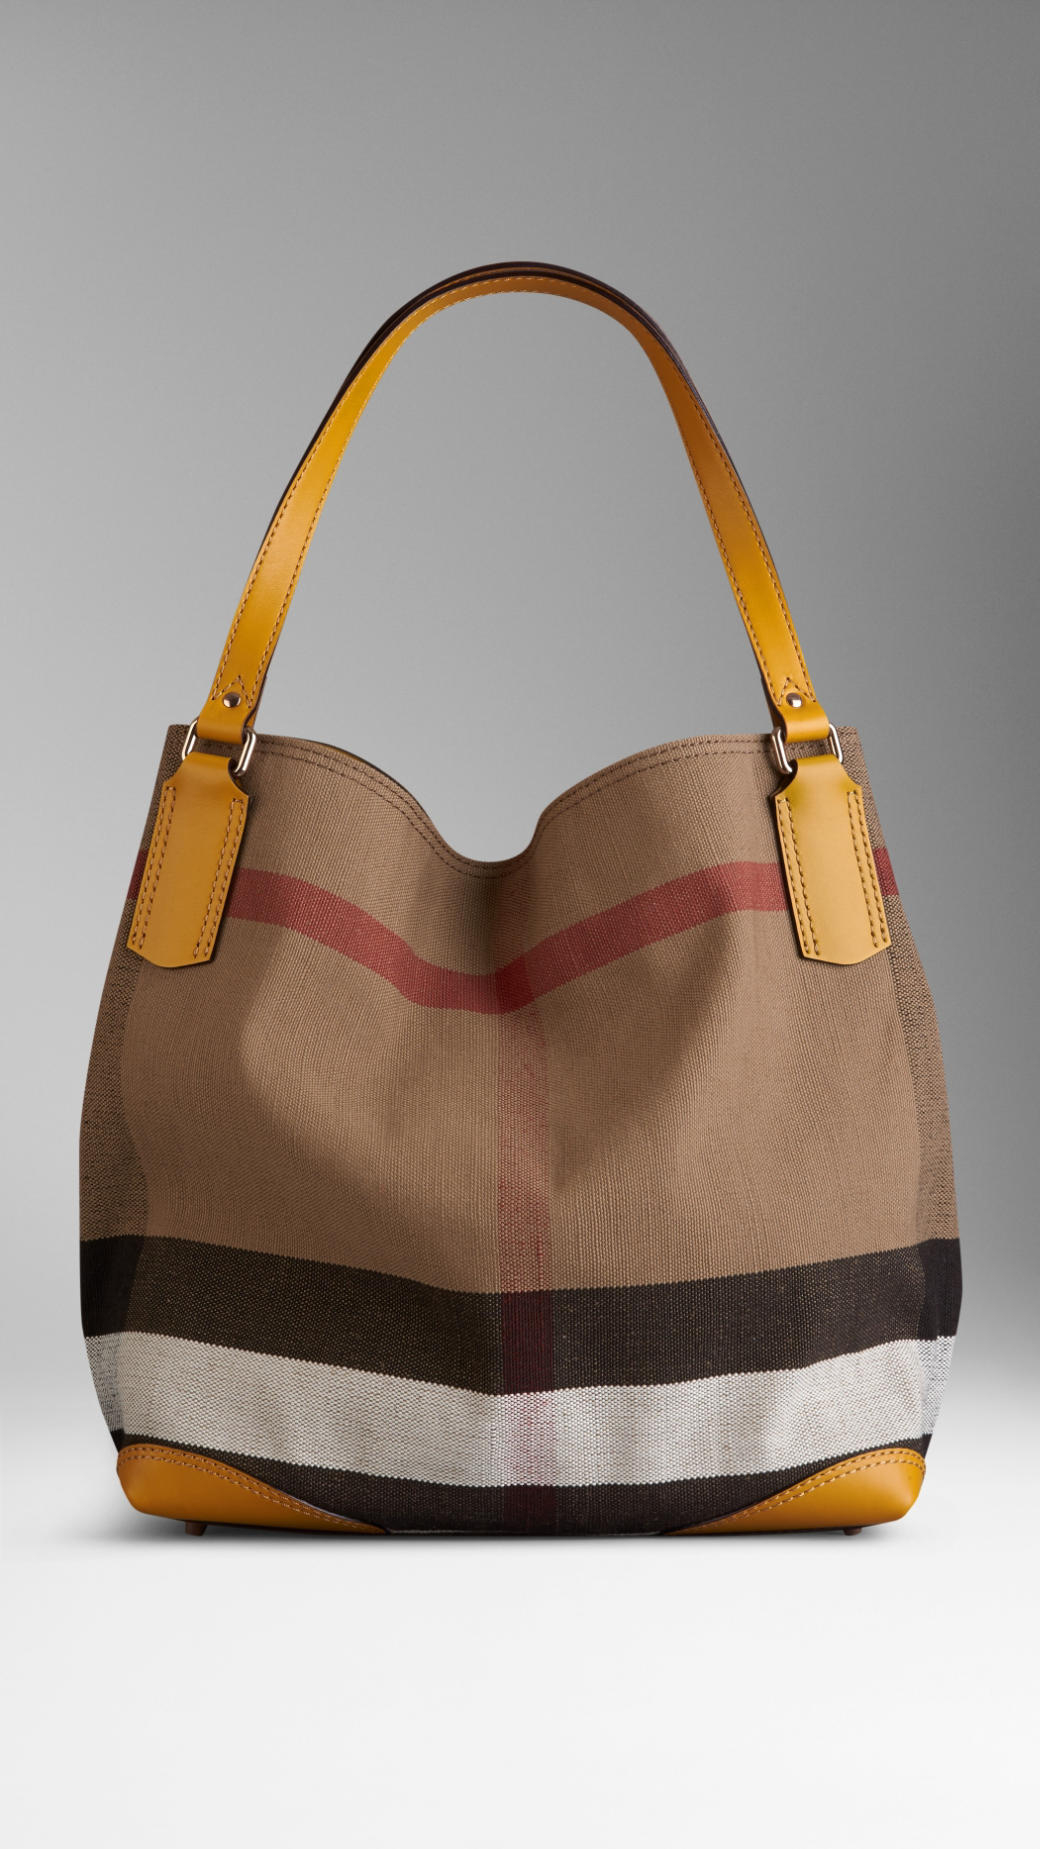 2f9136bdc713 Lyst - Burberry Medium Canvas Check Tote Bag in Yellow